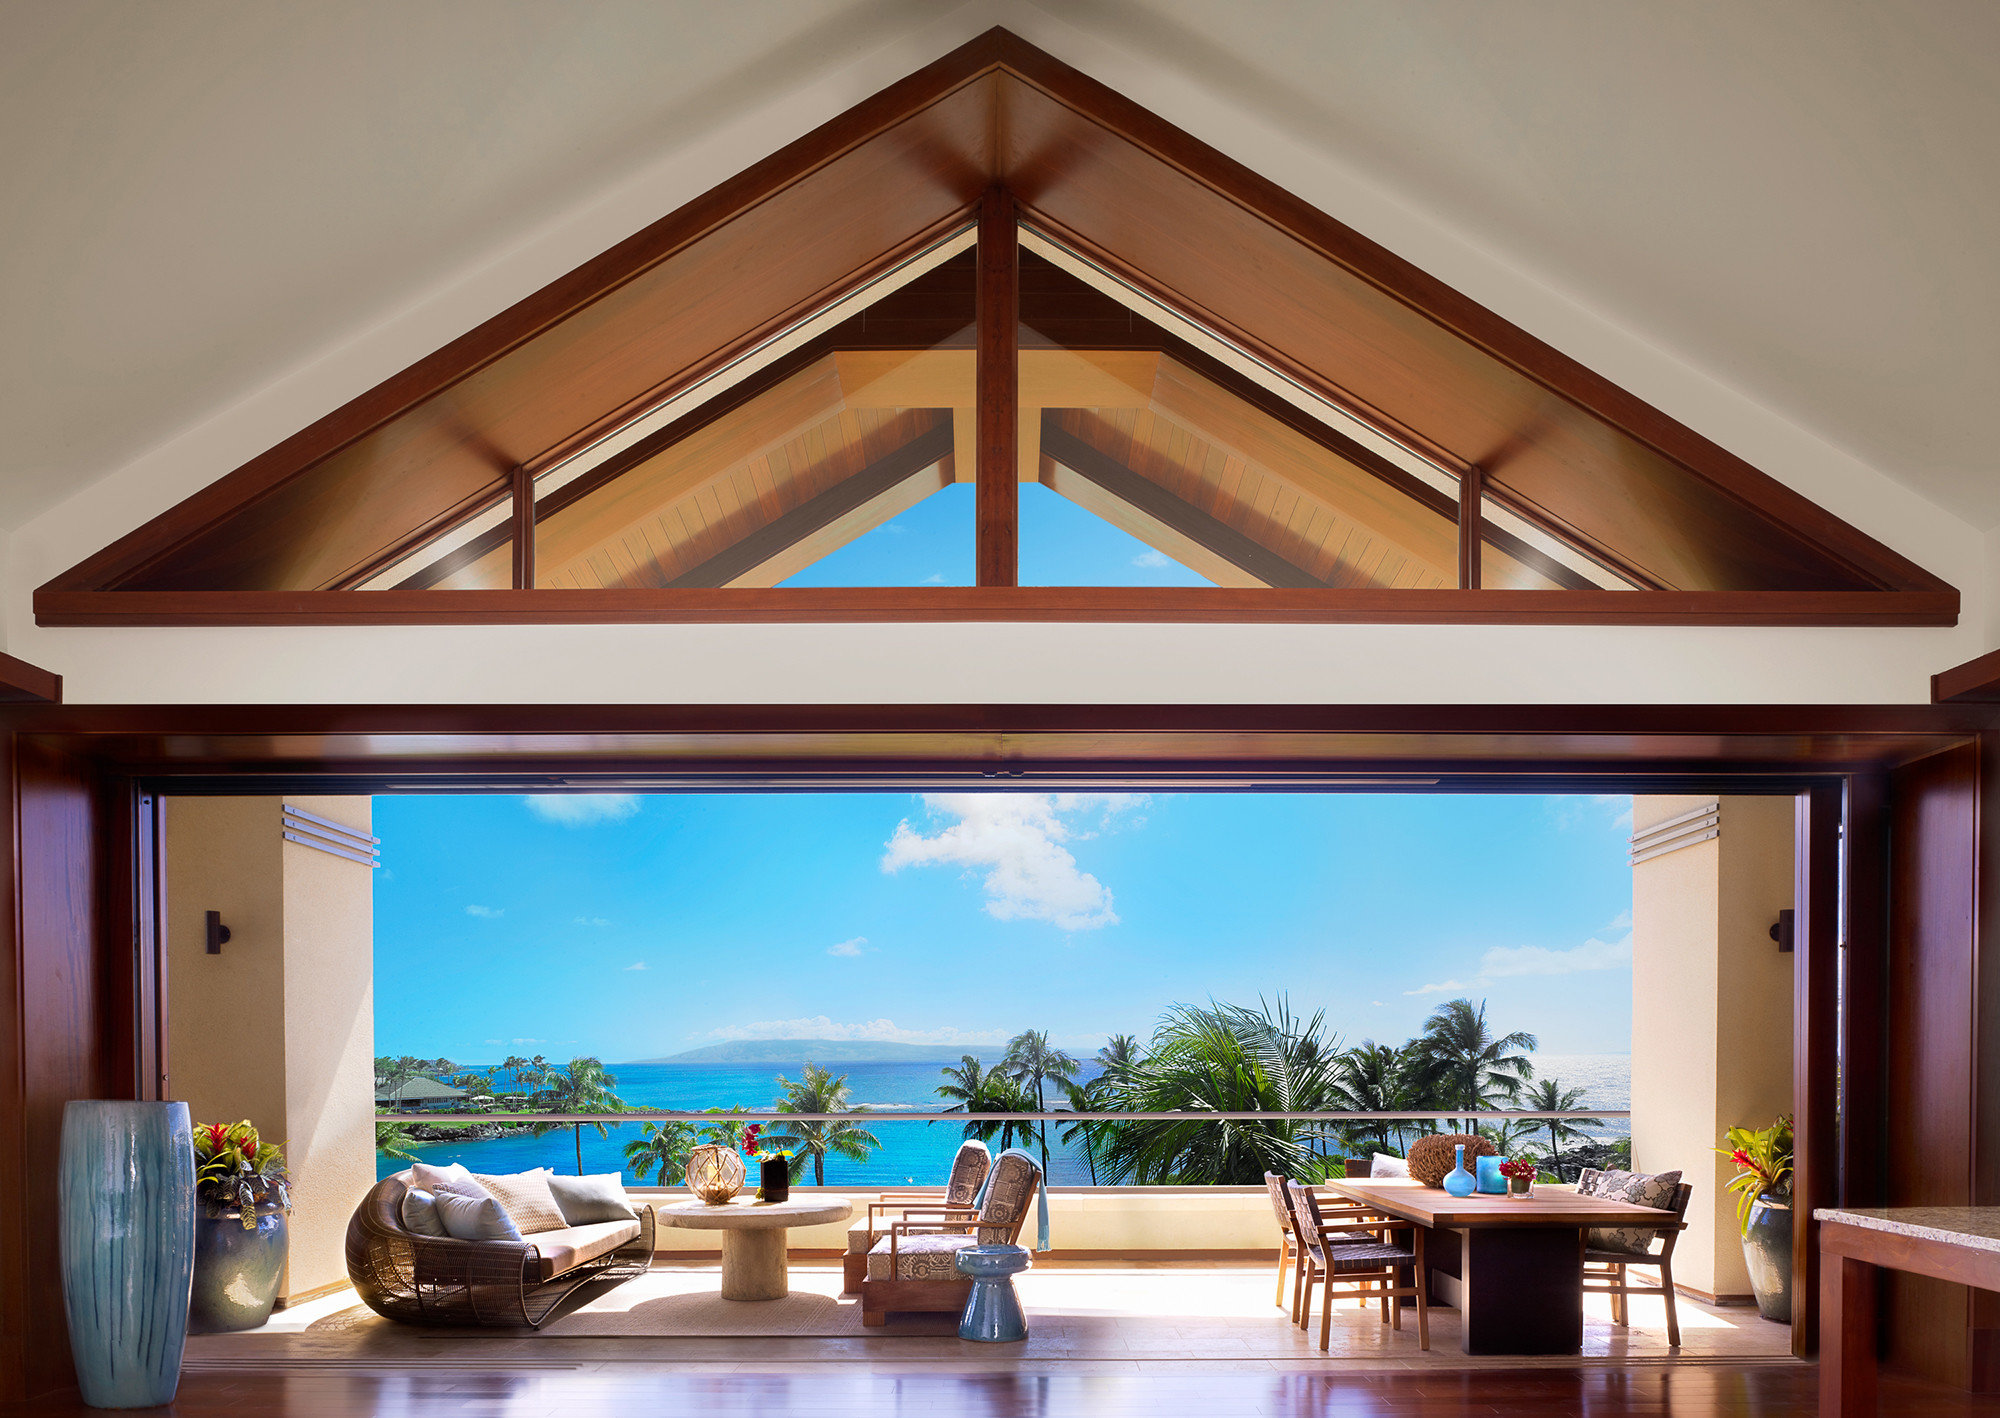 Beach Boutique Hotels Hotels Luxury Travel indoor wall window building ceiling interior design Living room home living room estate daylighting wood real estate house table furniture area